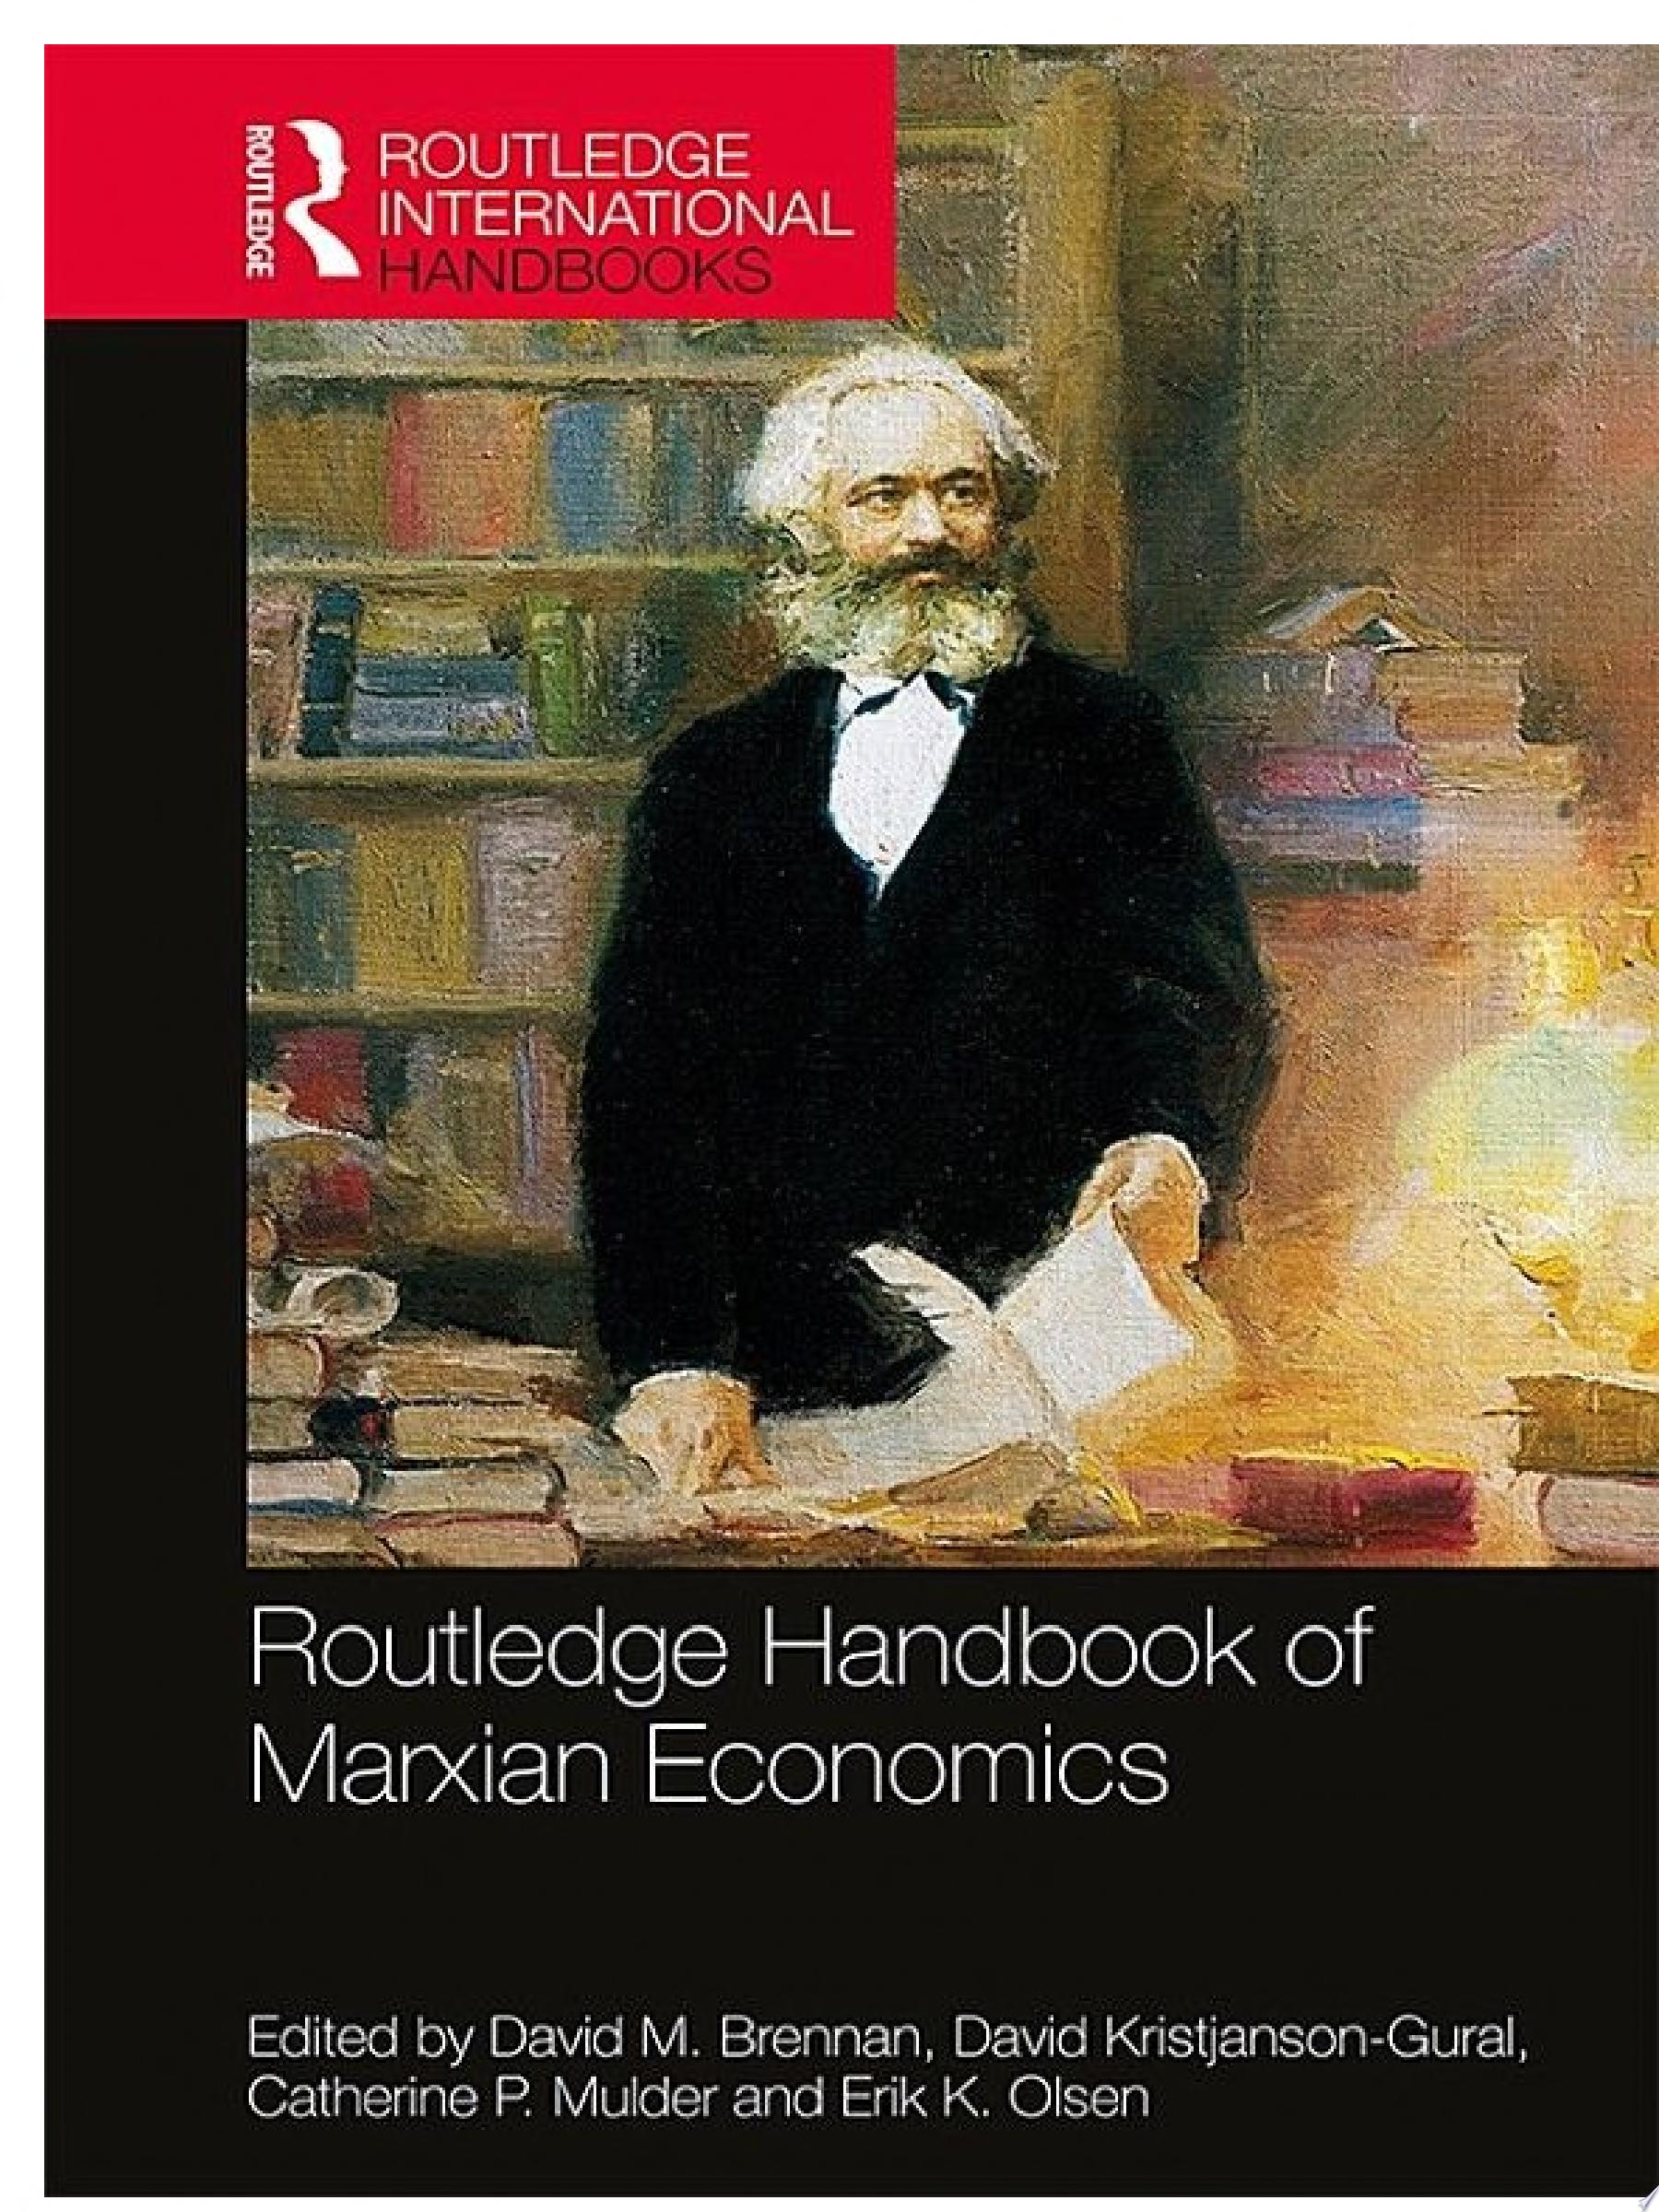 Routledge Handbook of Marxian Economics